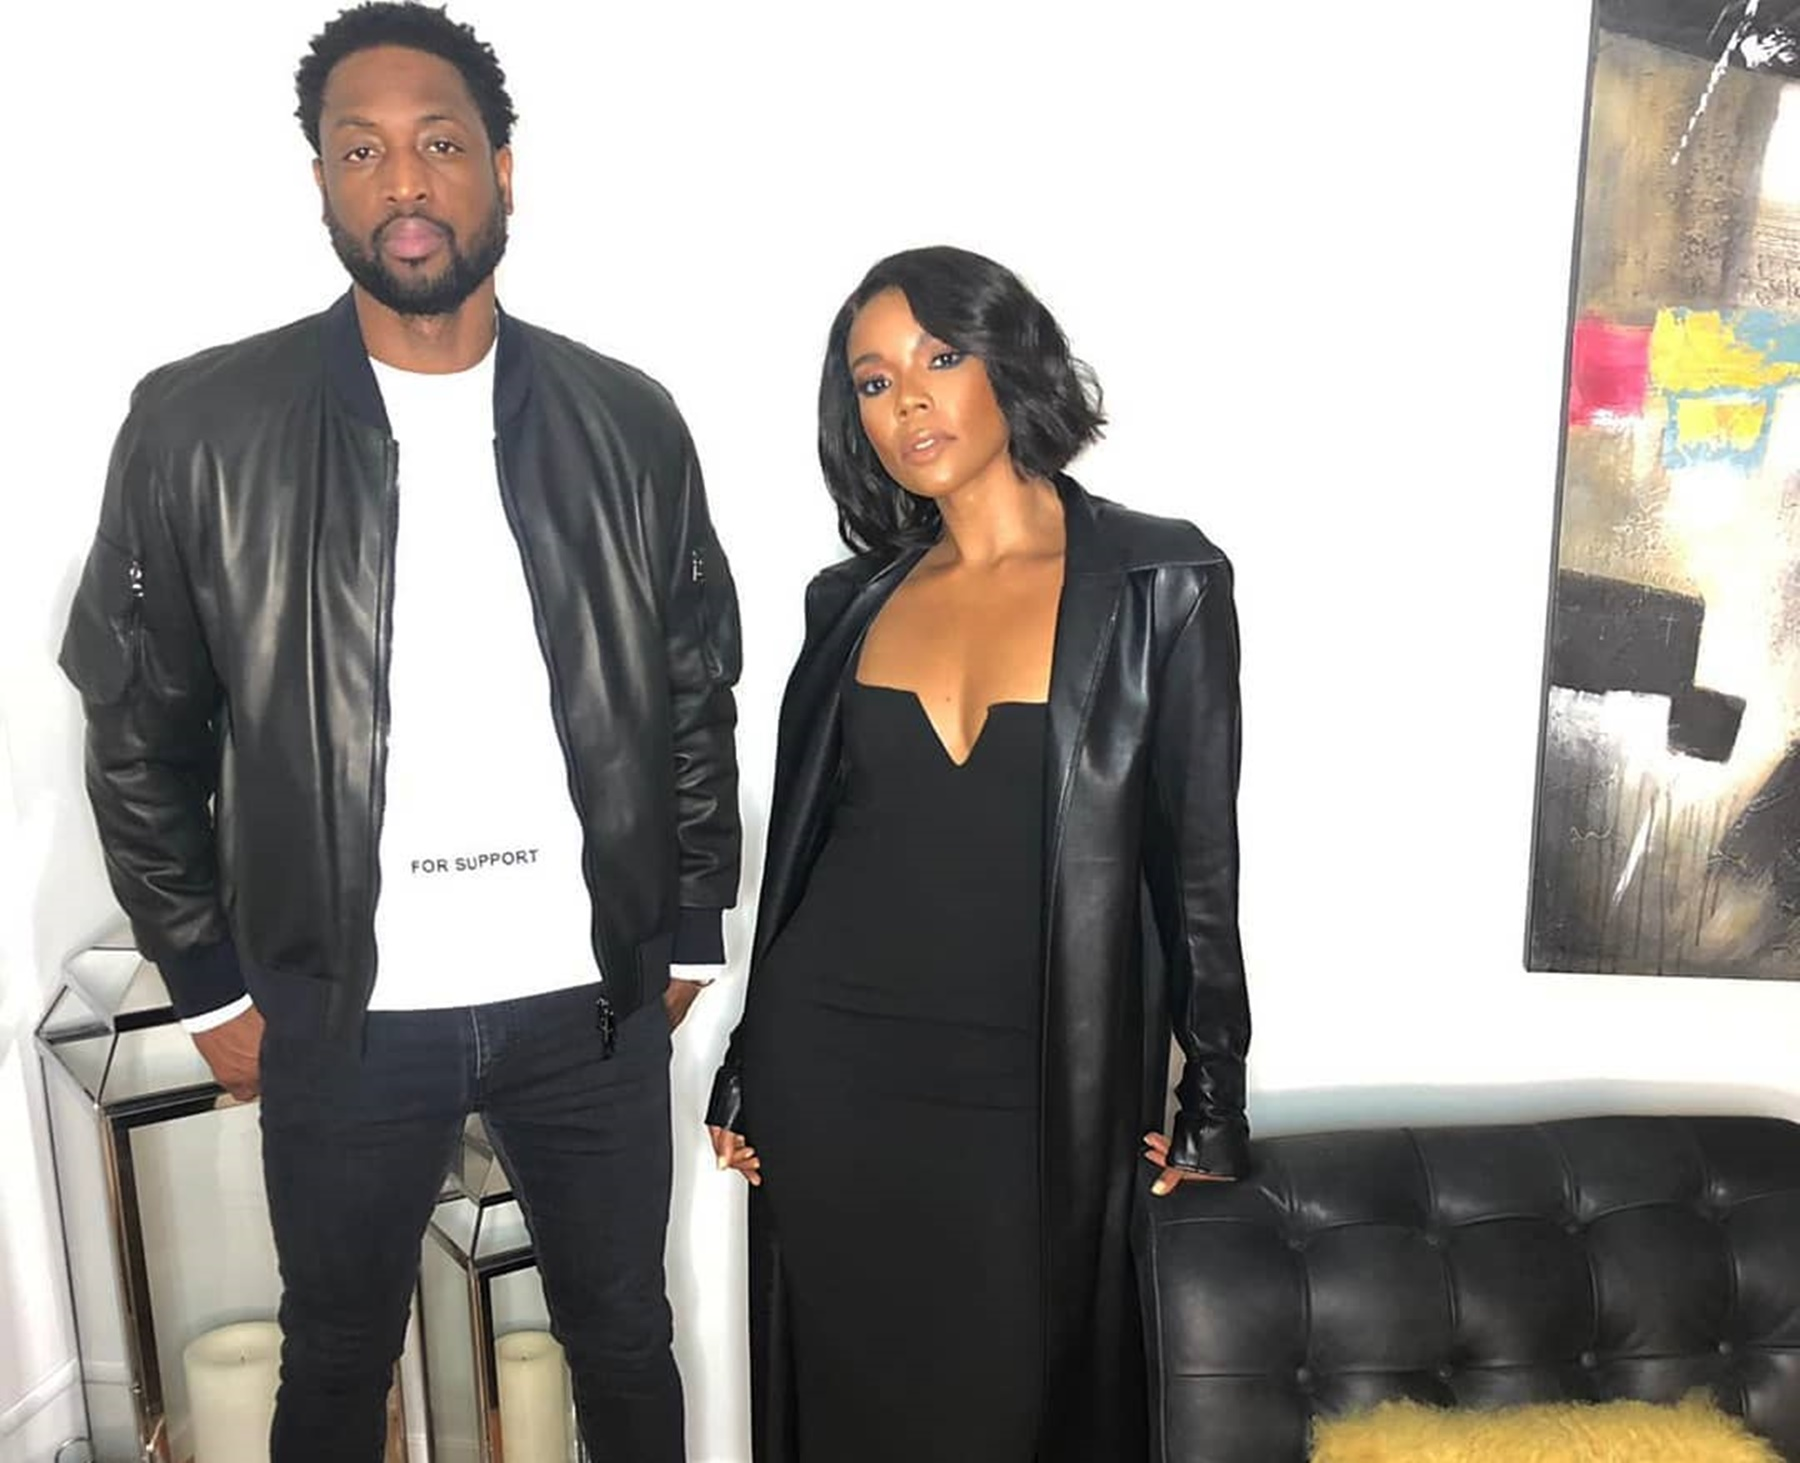 gabrielle-union-and-dwyane-wade-introduce-their-nephew-dahveon-morris-date-to-the-prom-in-stunning-picture-drama-about-race-ensues